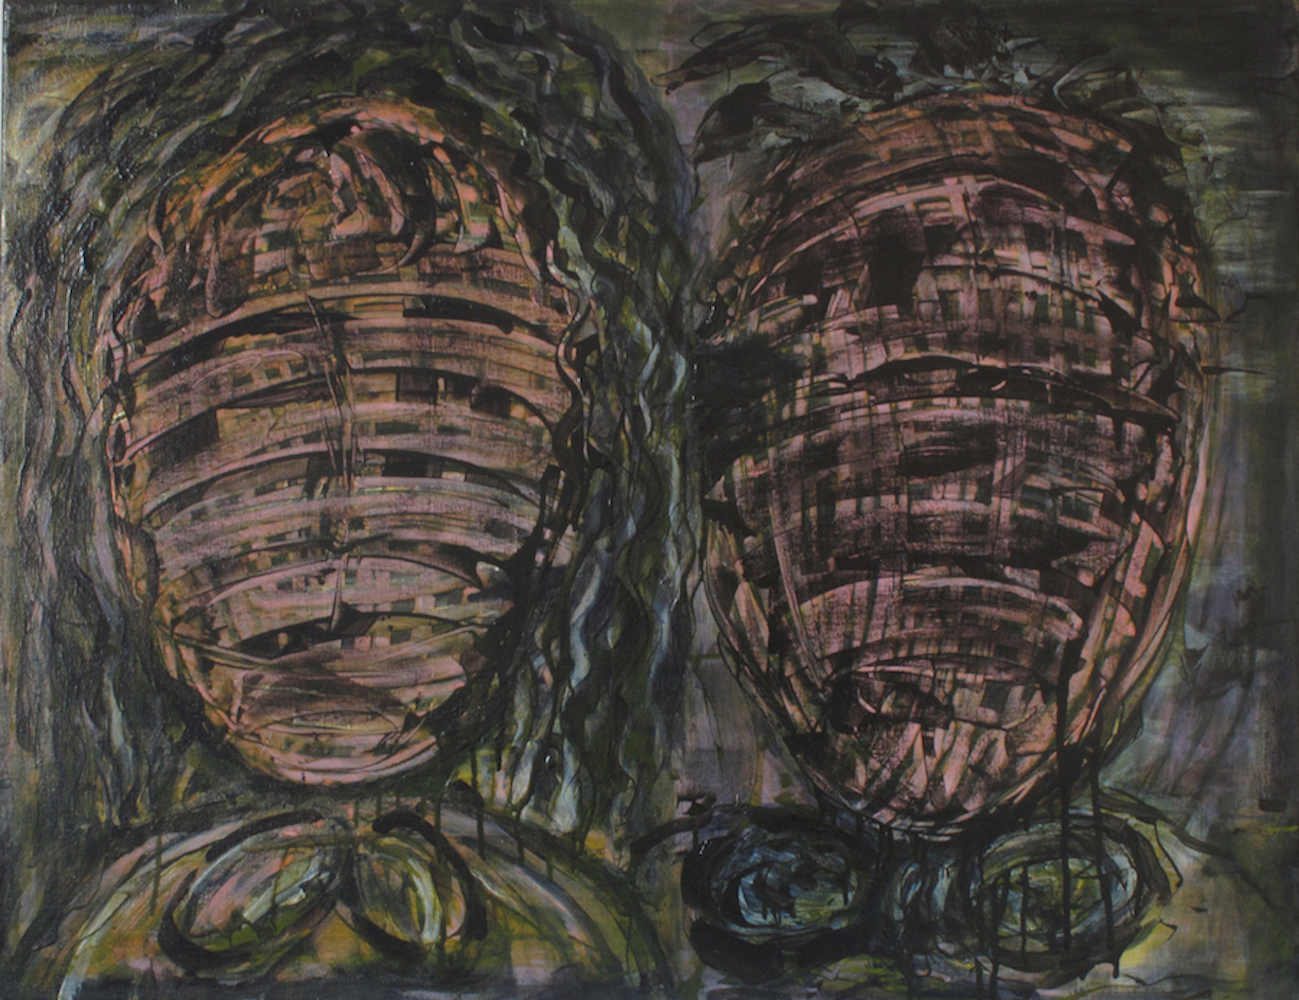 Him & Her_acrylic on canvas_71x91x3.5cm